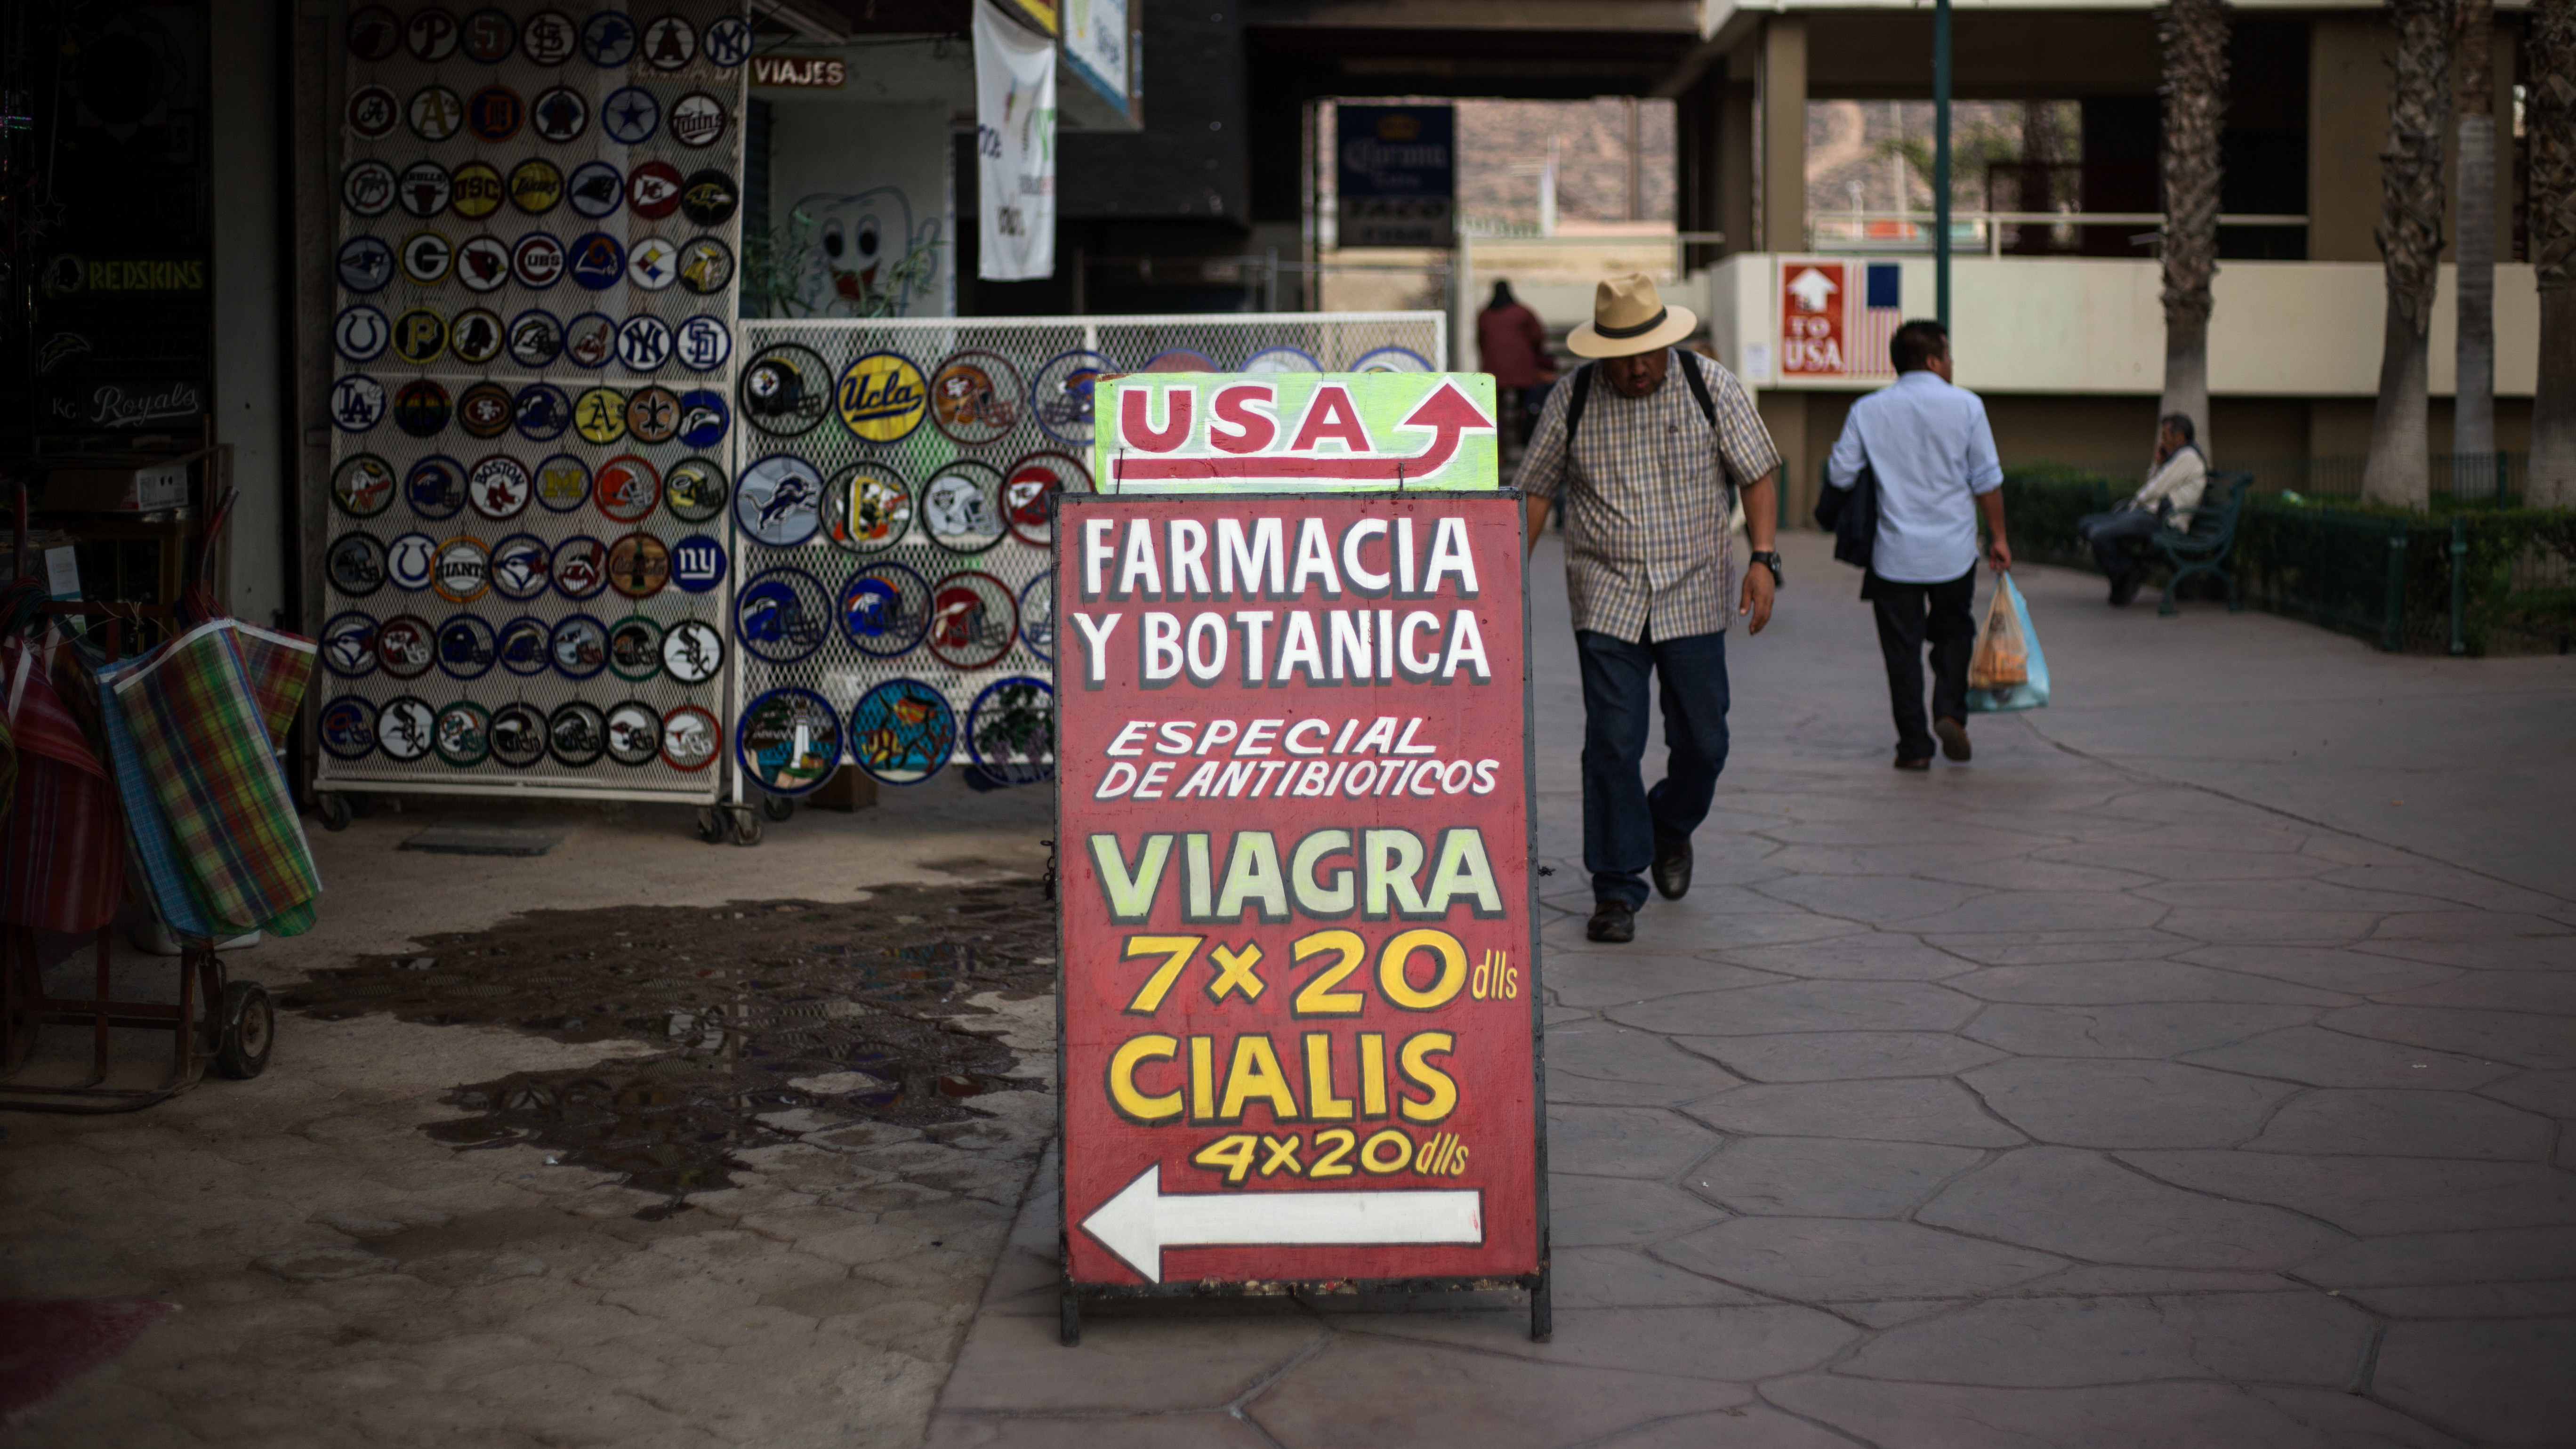 Image for American Travelers Seek Cheaper Prescription Drugs In Mexico And Beyond Article